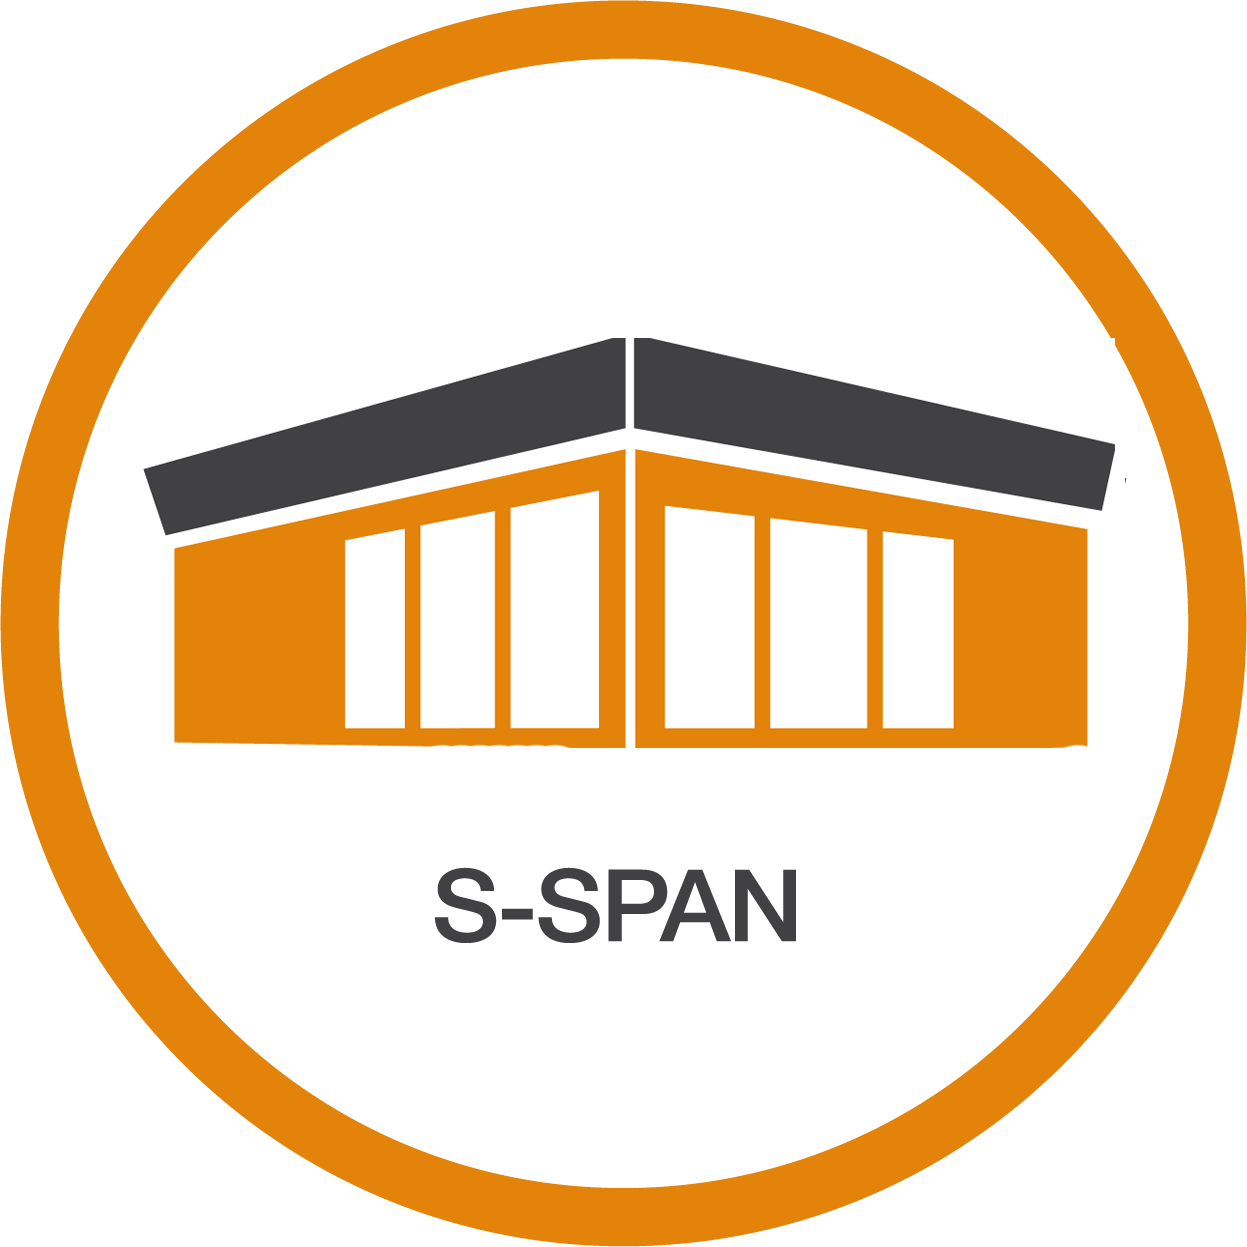 S-SPAN